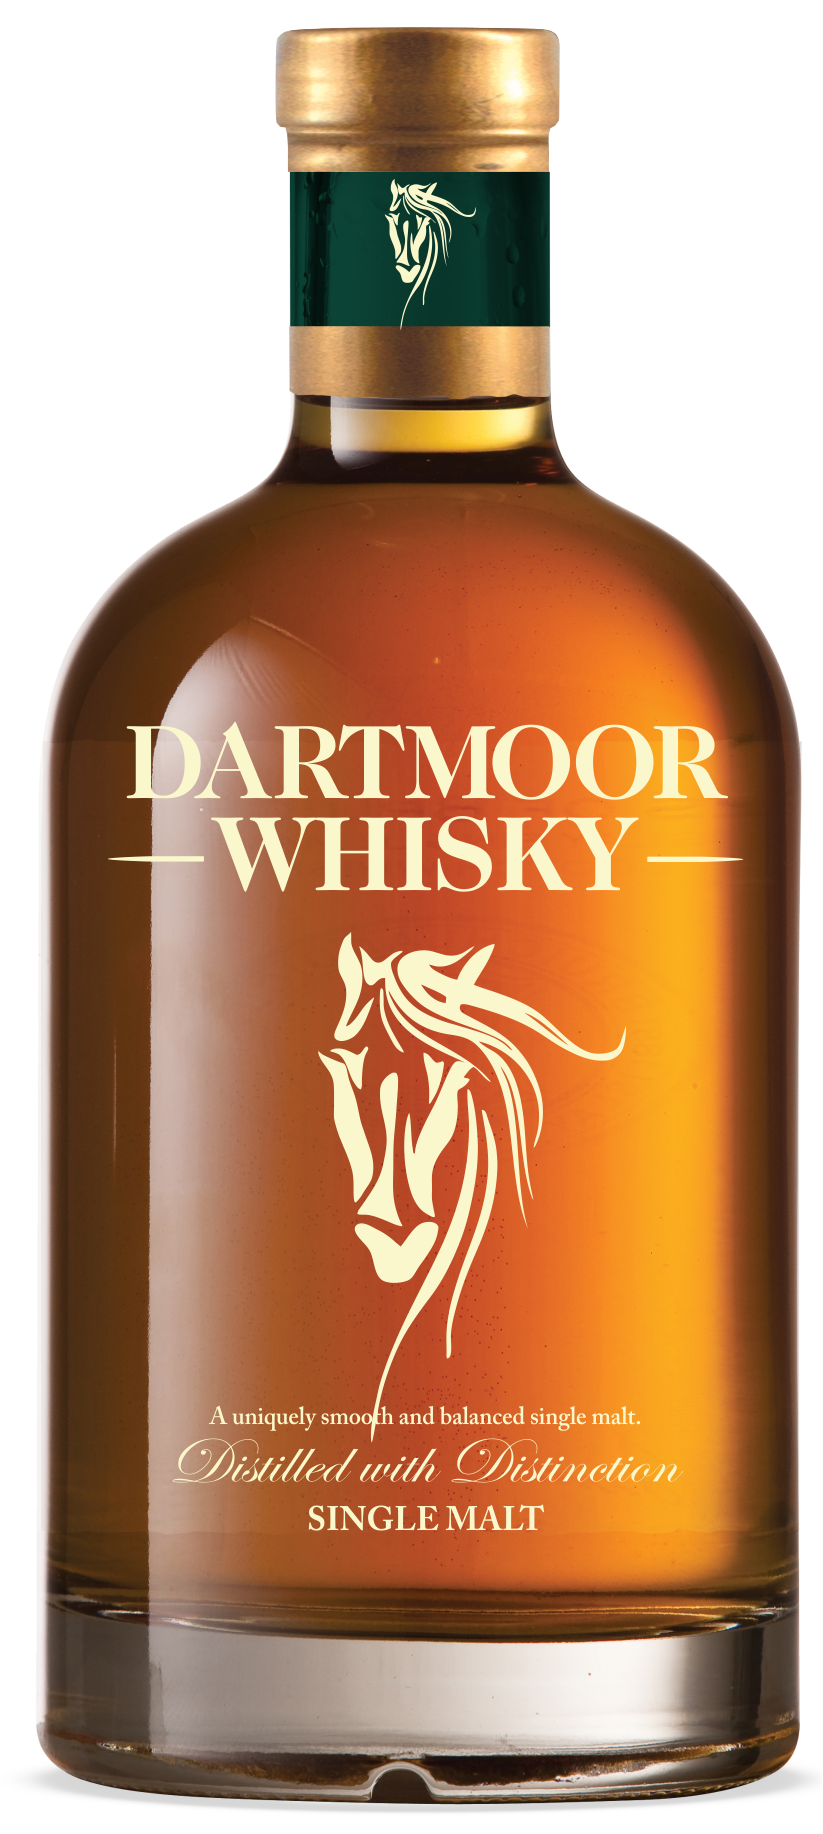 Dartmoor Distillery Single Malt Whisky Bottle